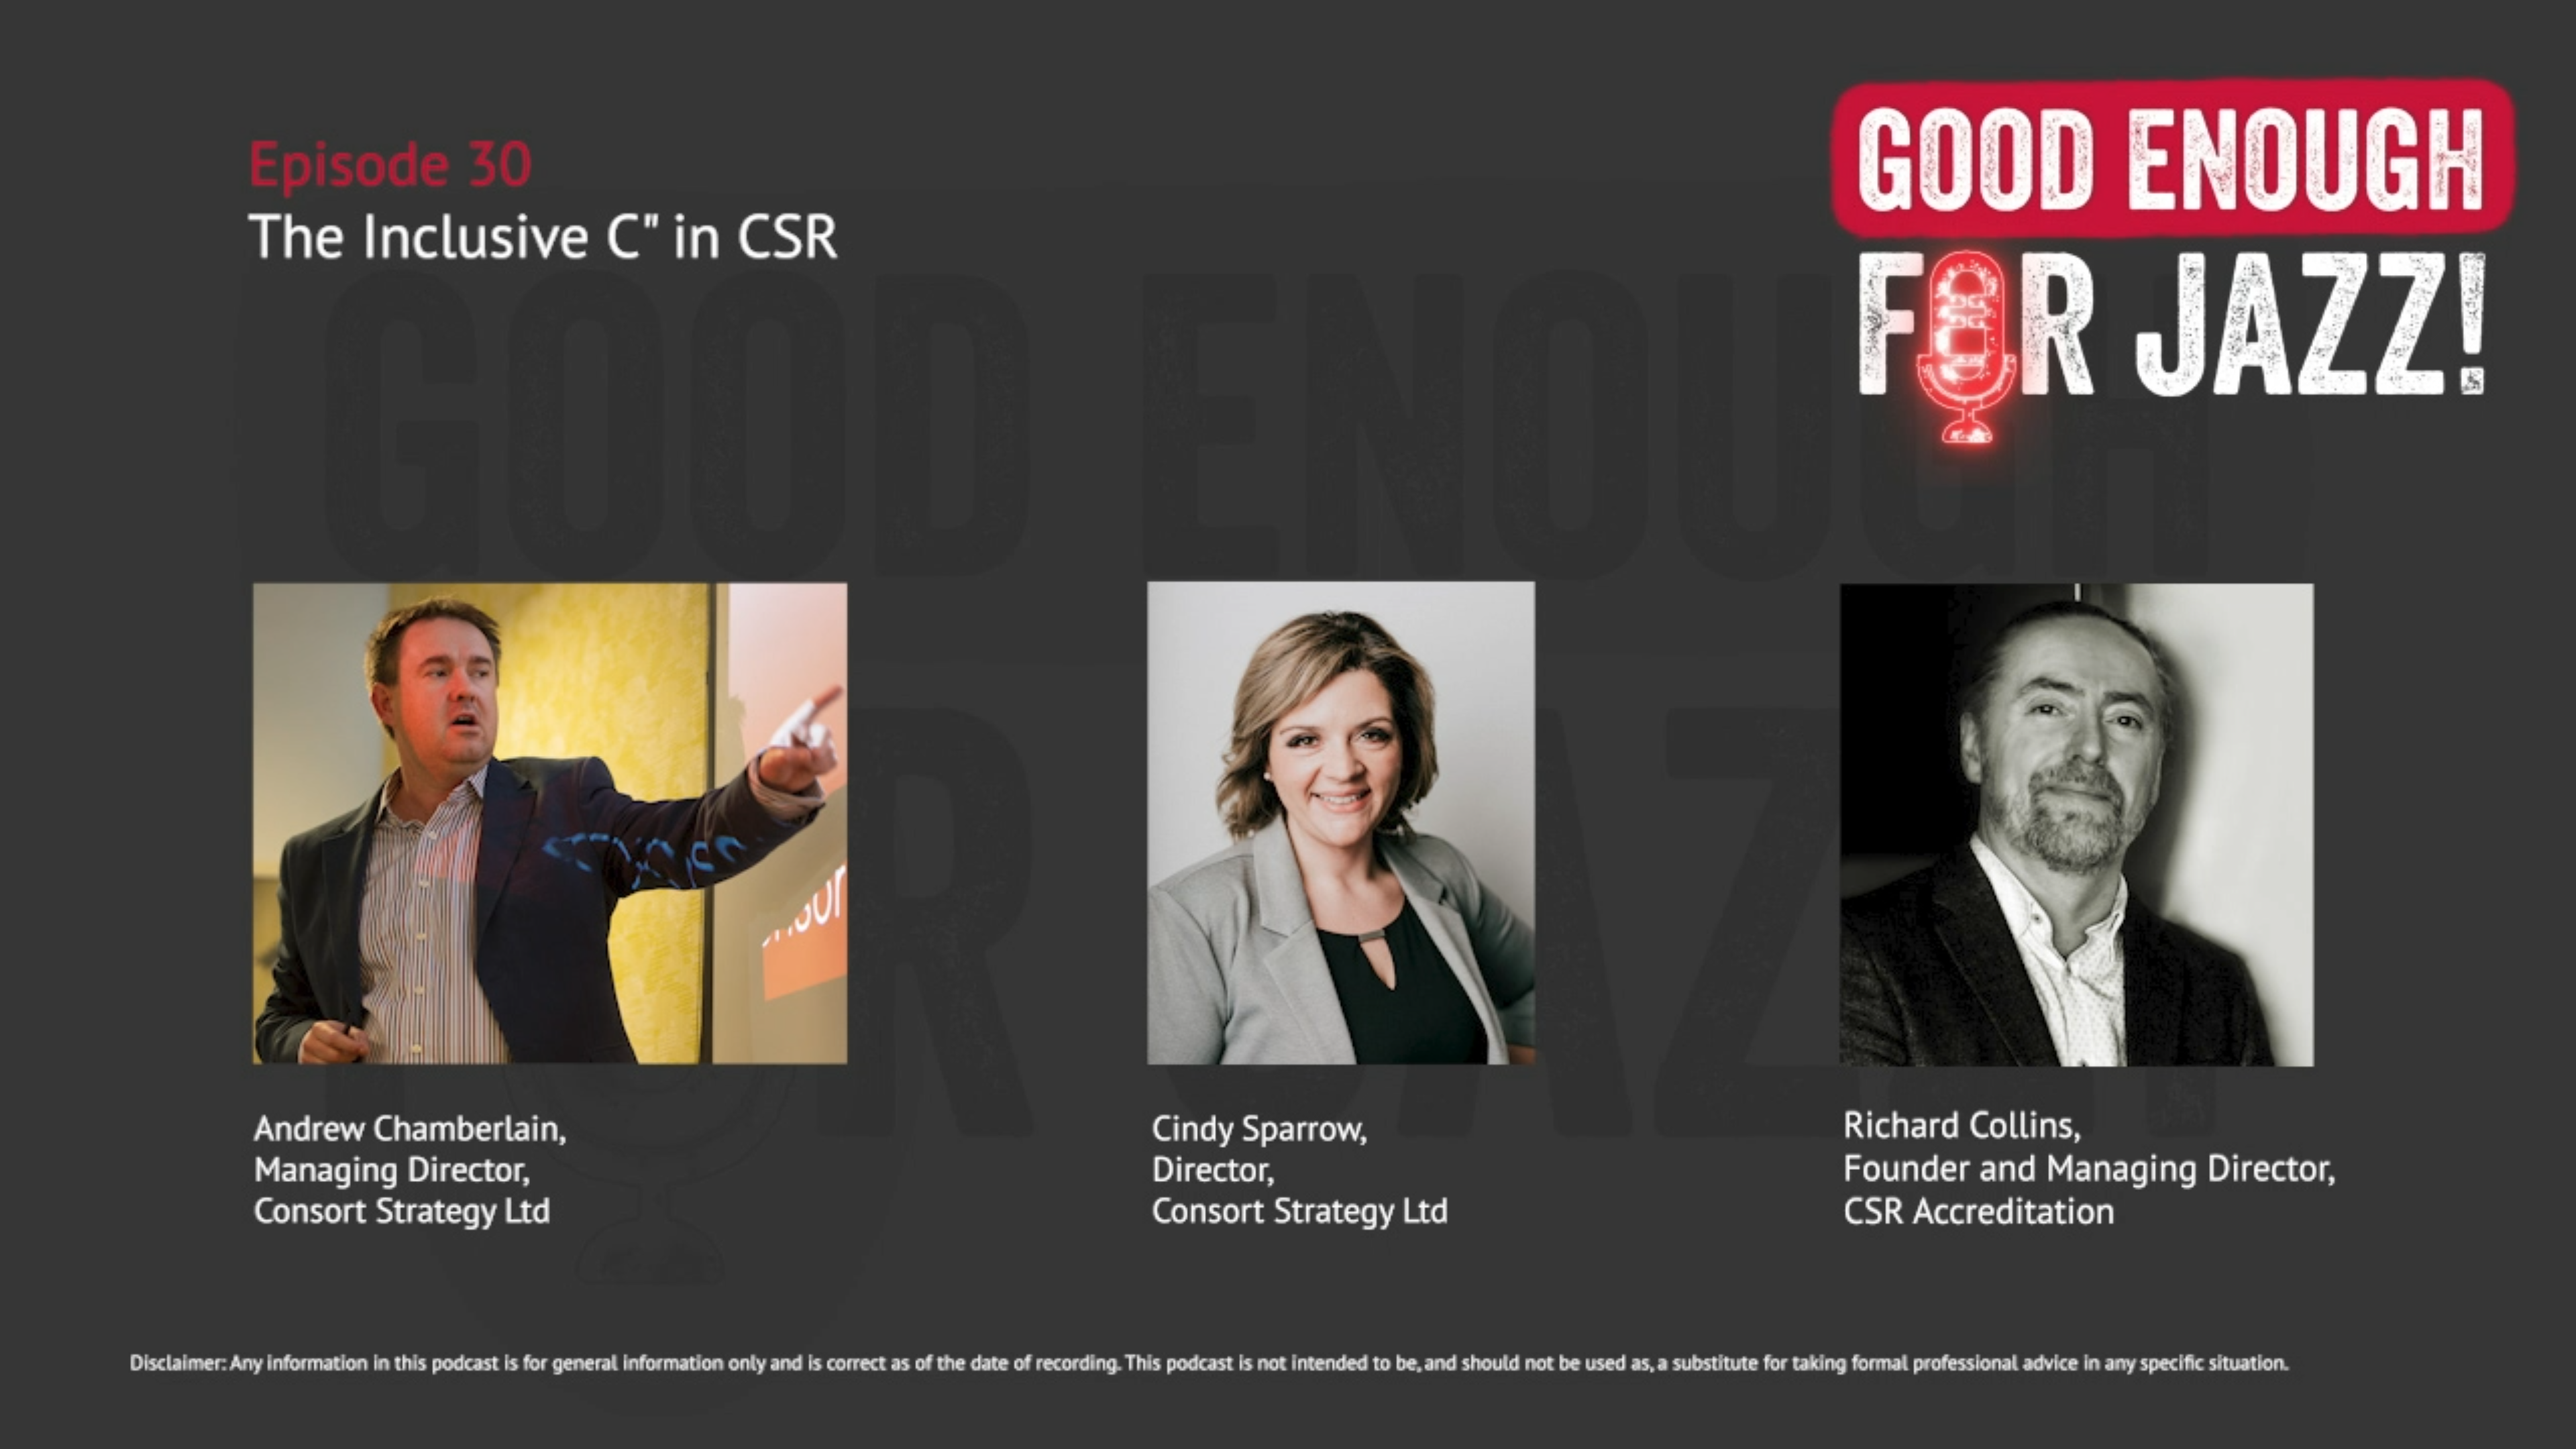 CSR-Interview Richard Collins on Good Enough For Jazz